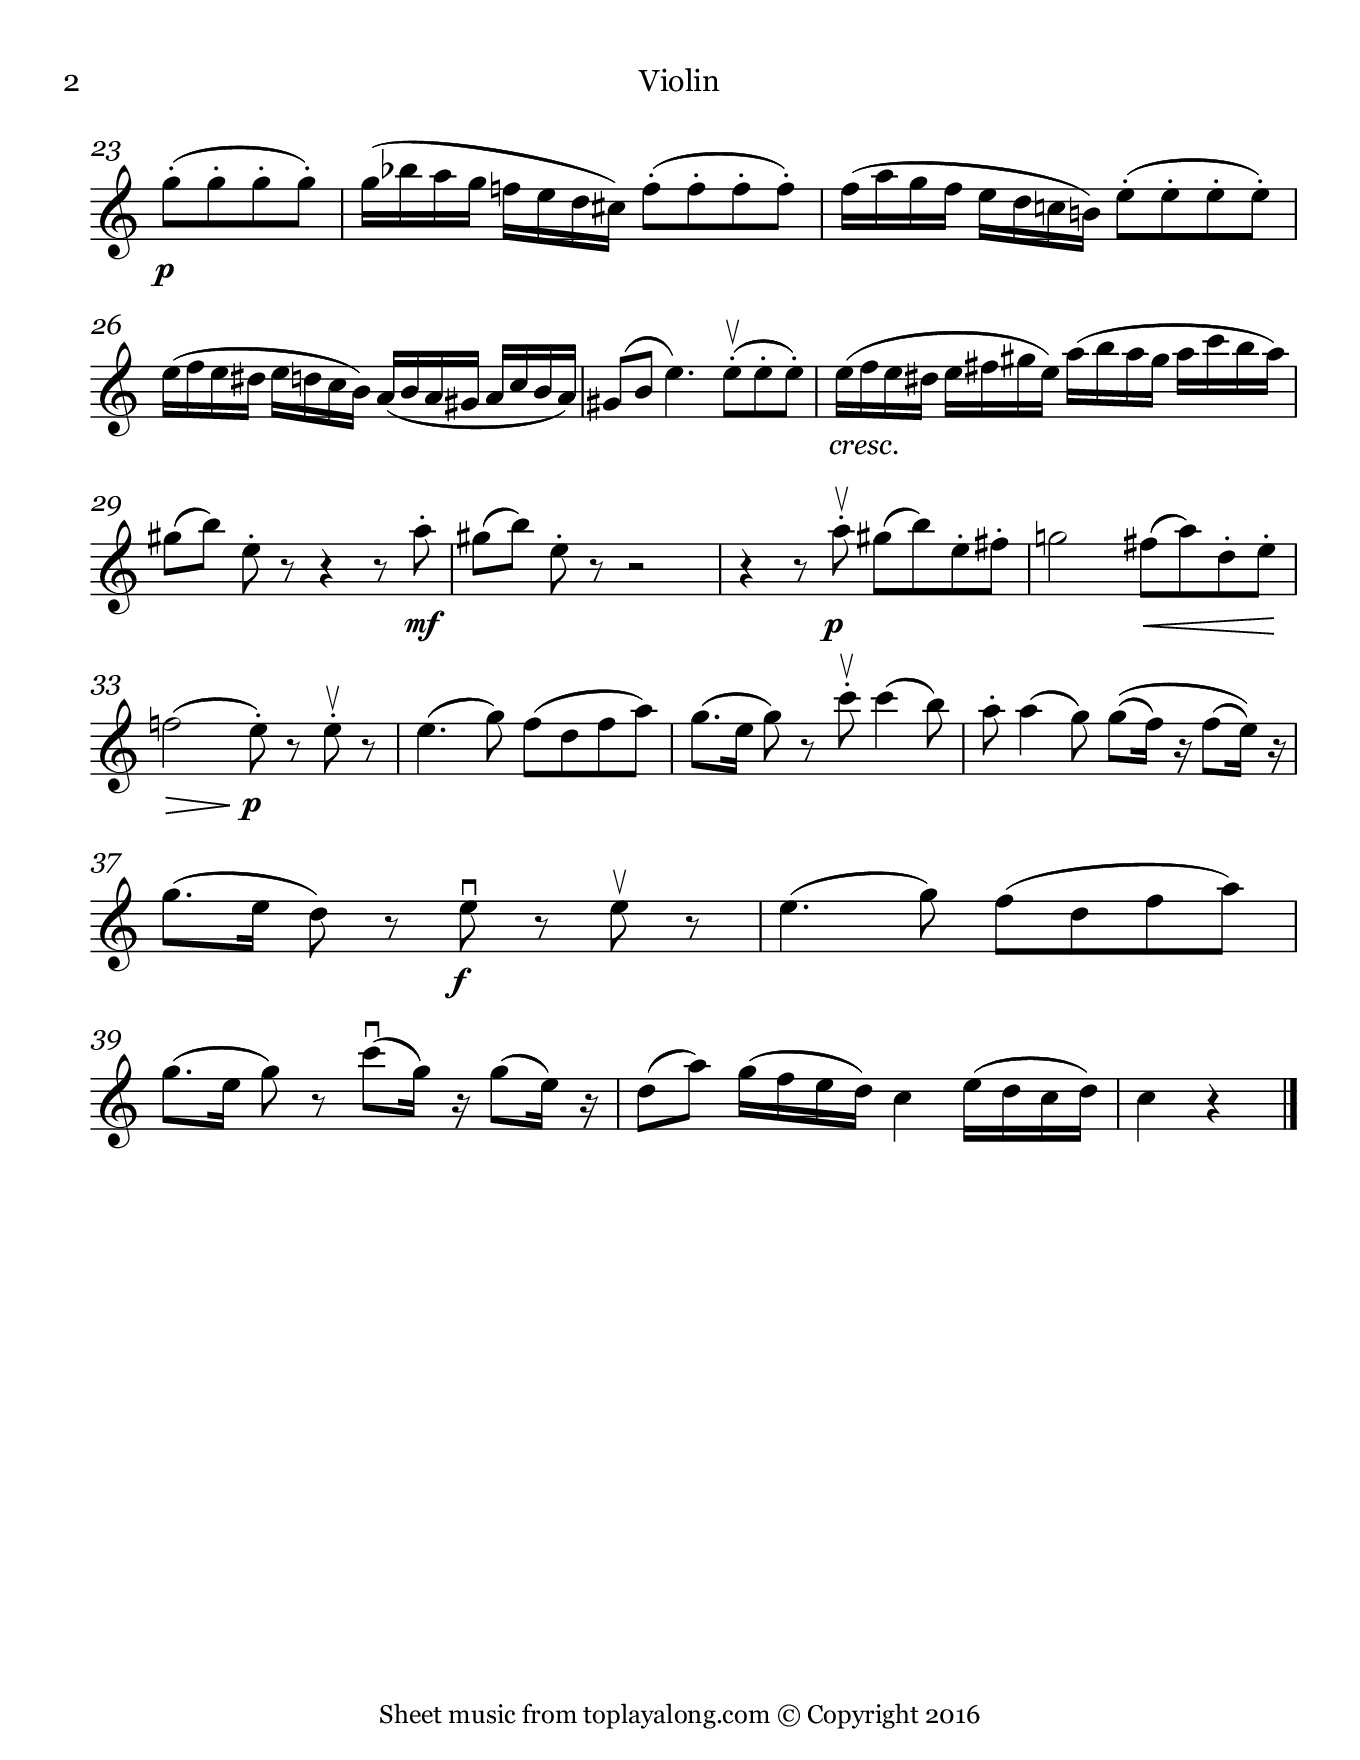 Romanze from Eine kleine Nachtmusik by Mozart. Sheet music for Violin, page 2.